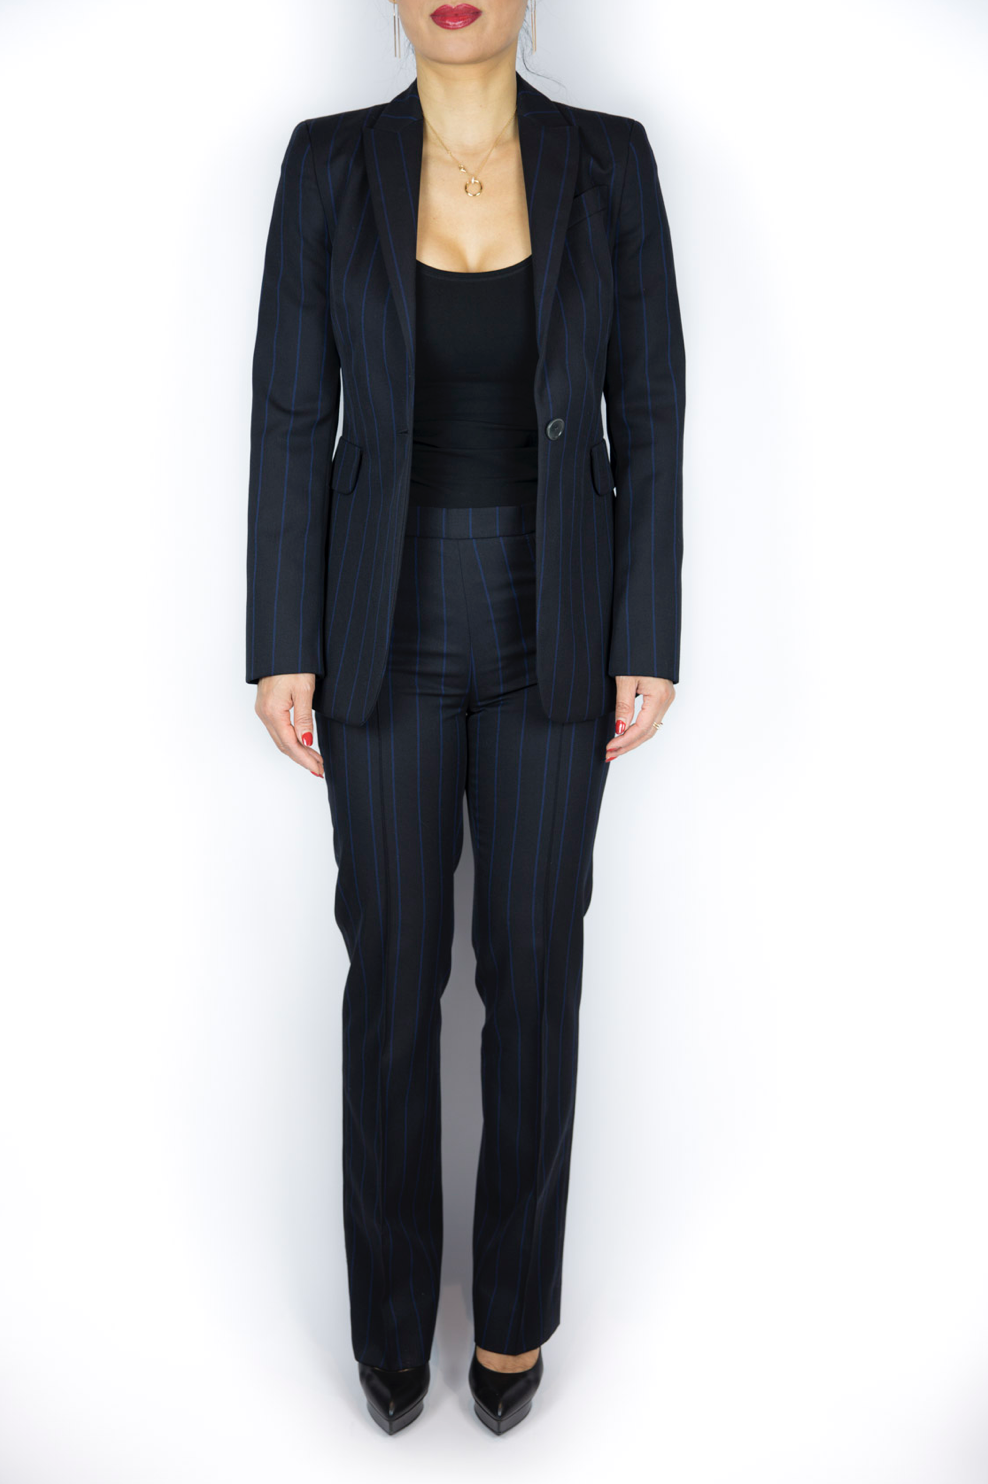 Akris - Black Stripe Suit - Size S